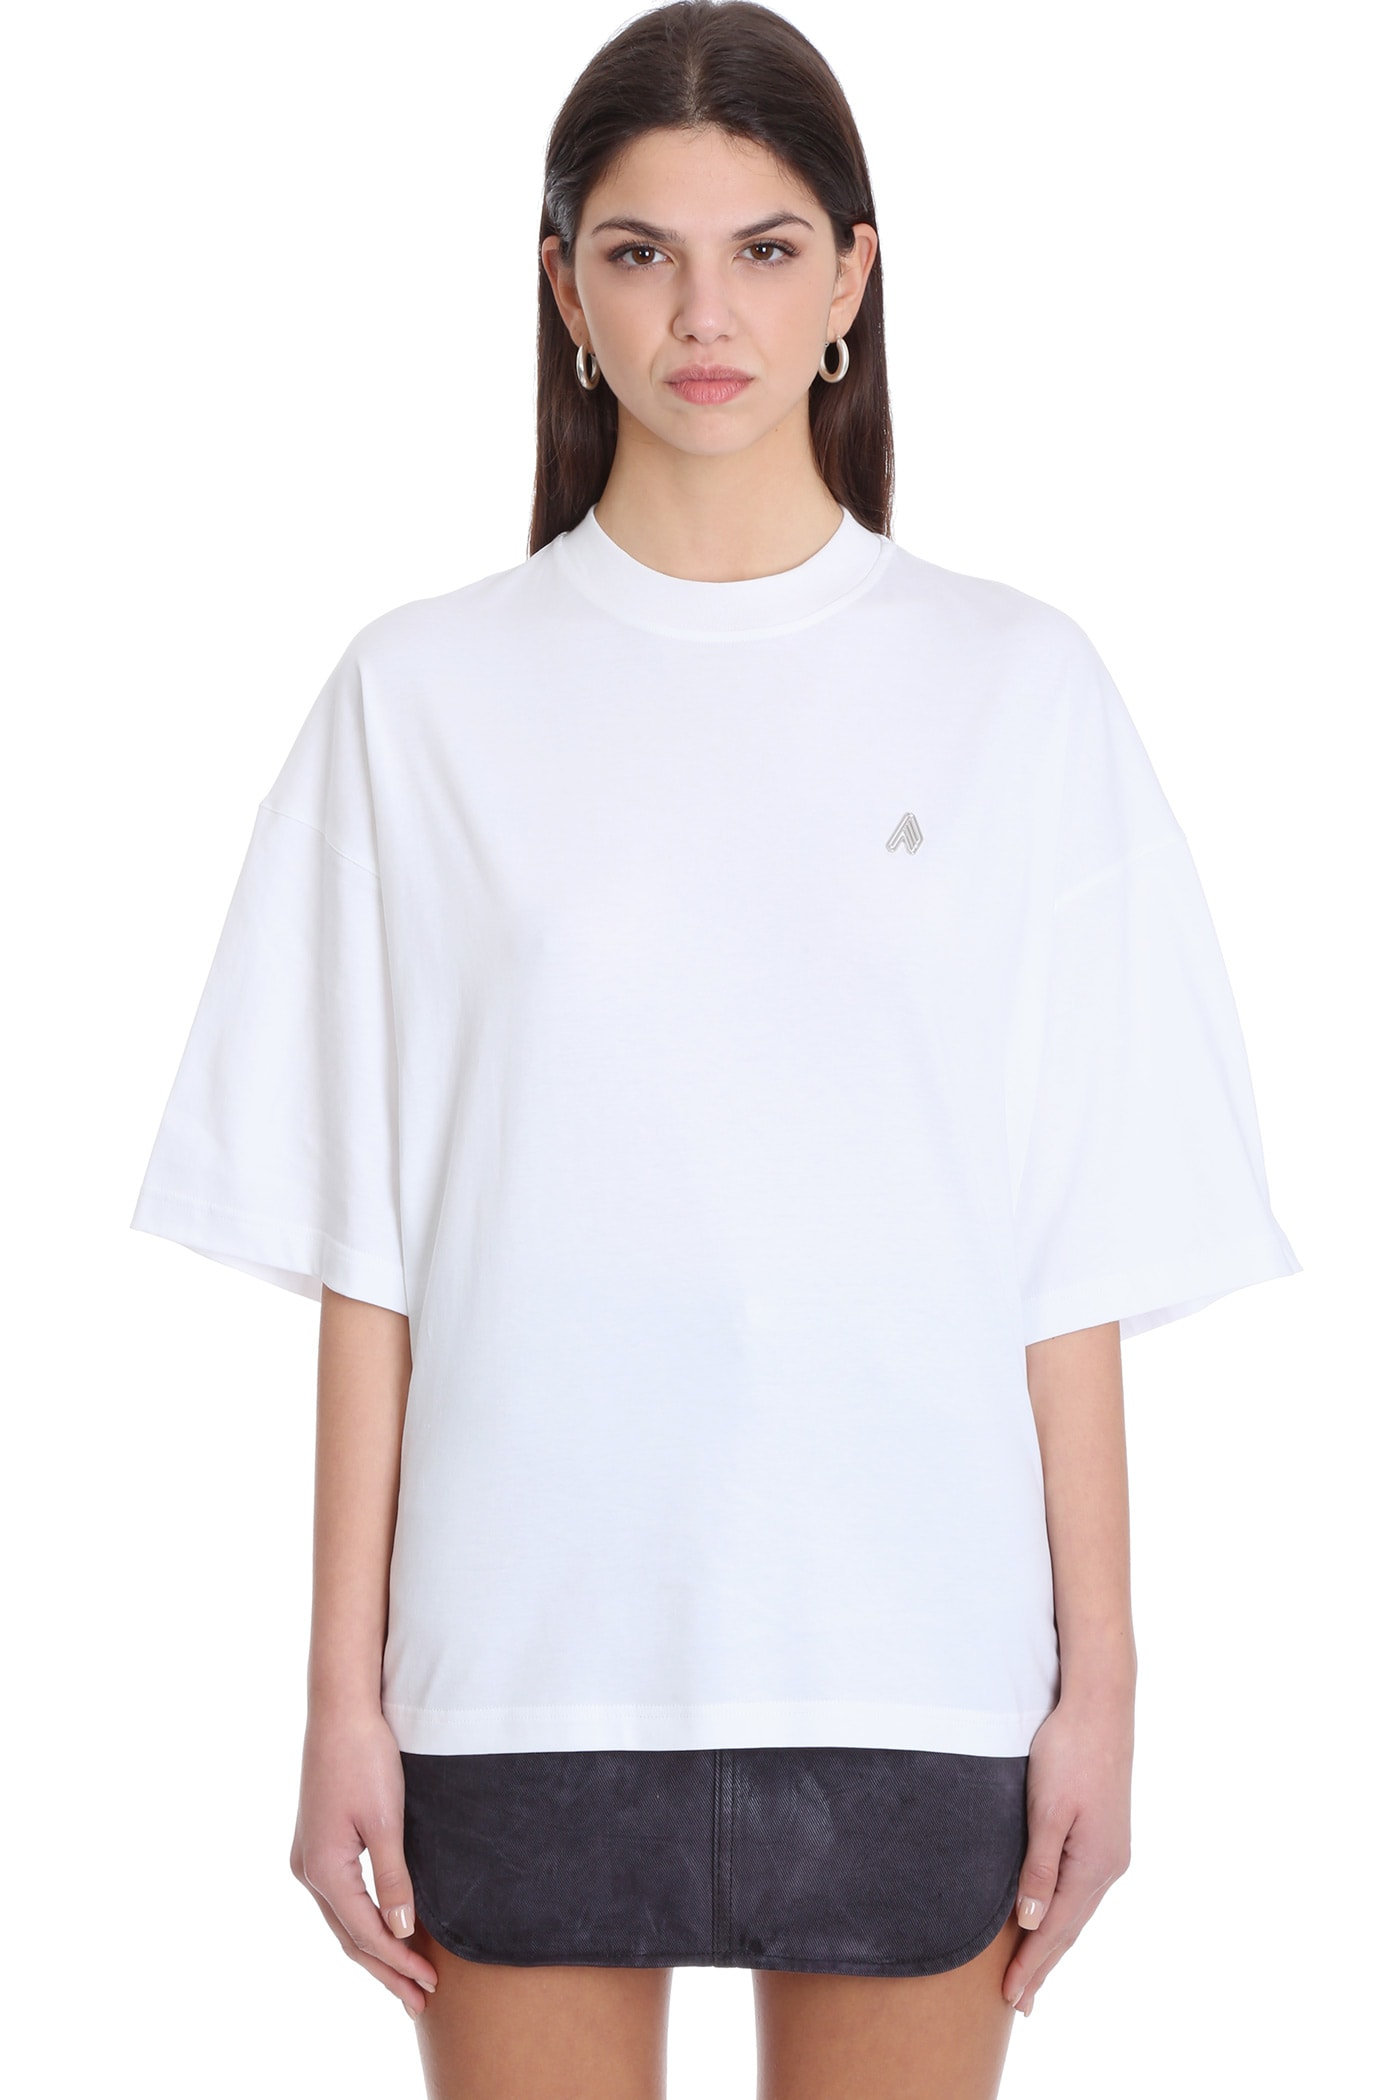 Attico CARA T-SHIRT IN WHITE COTTON